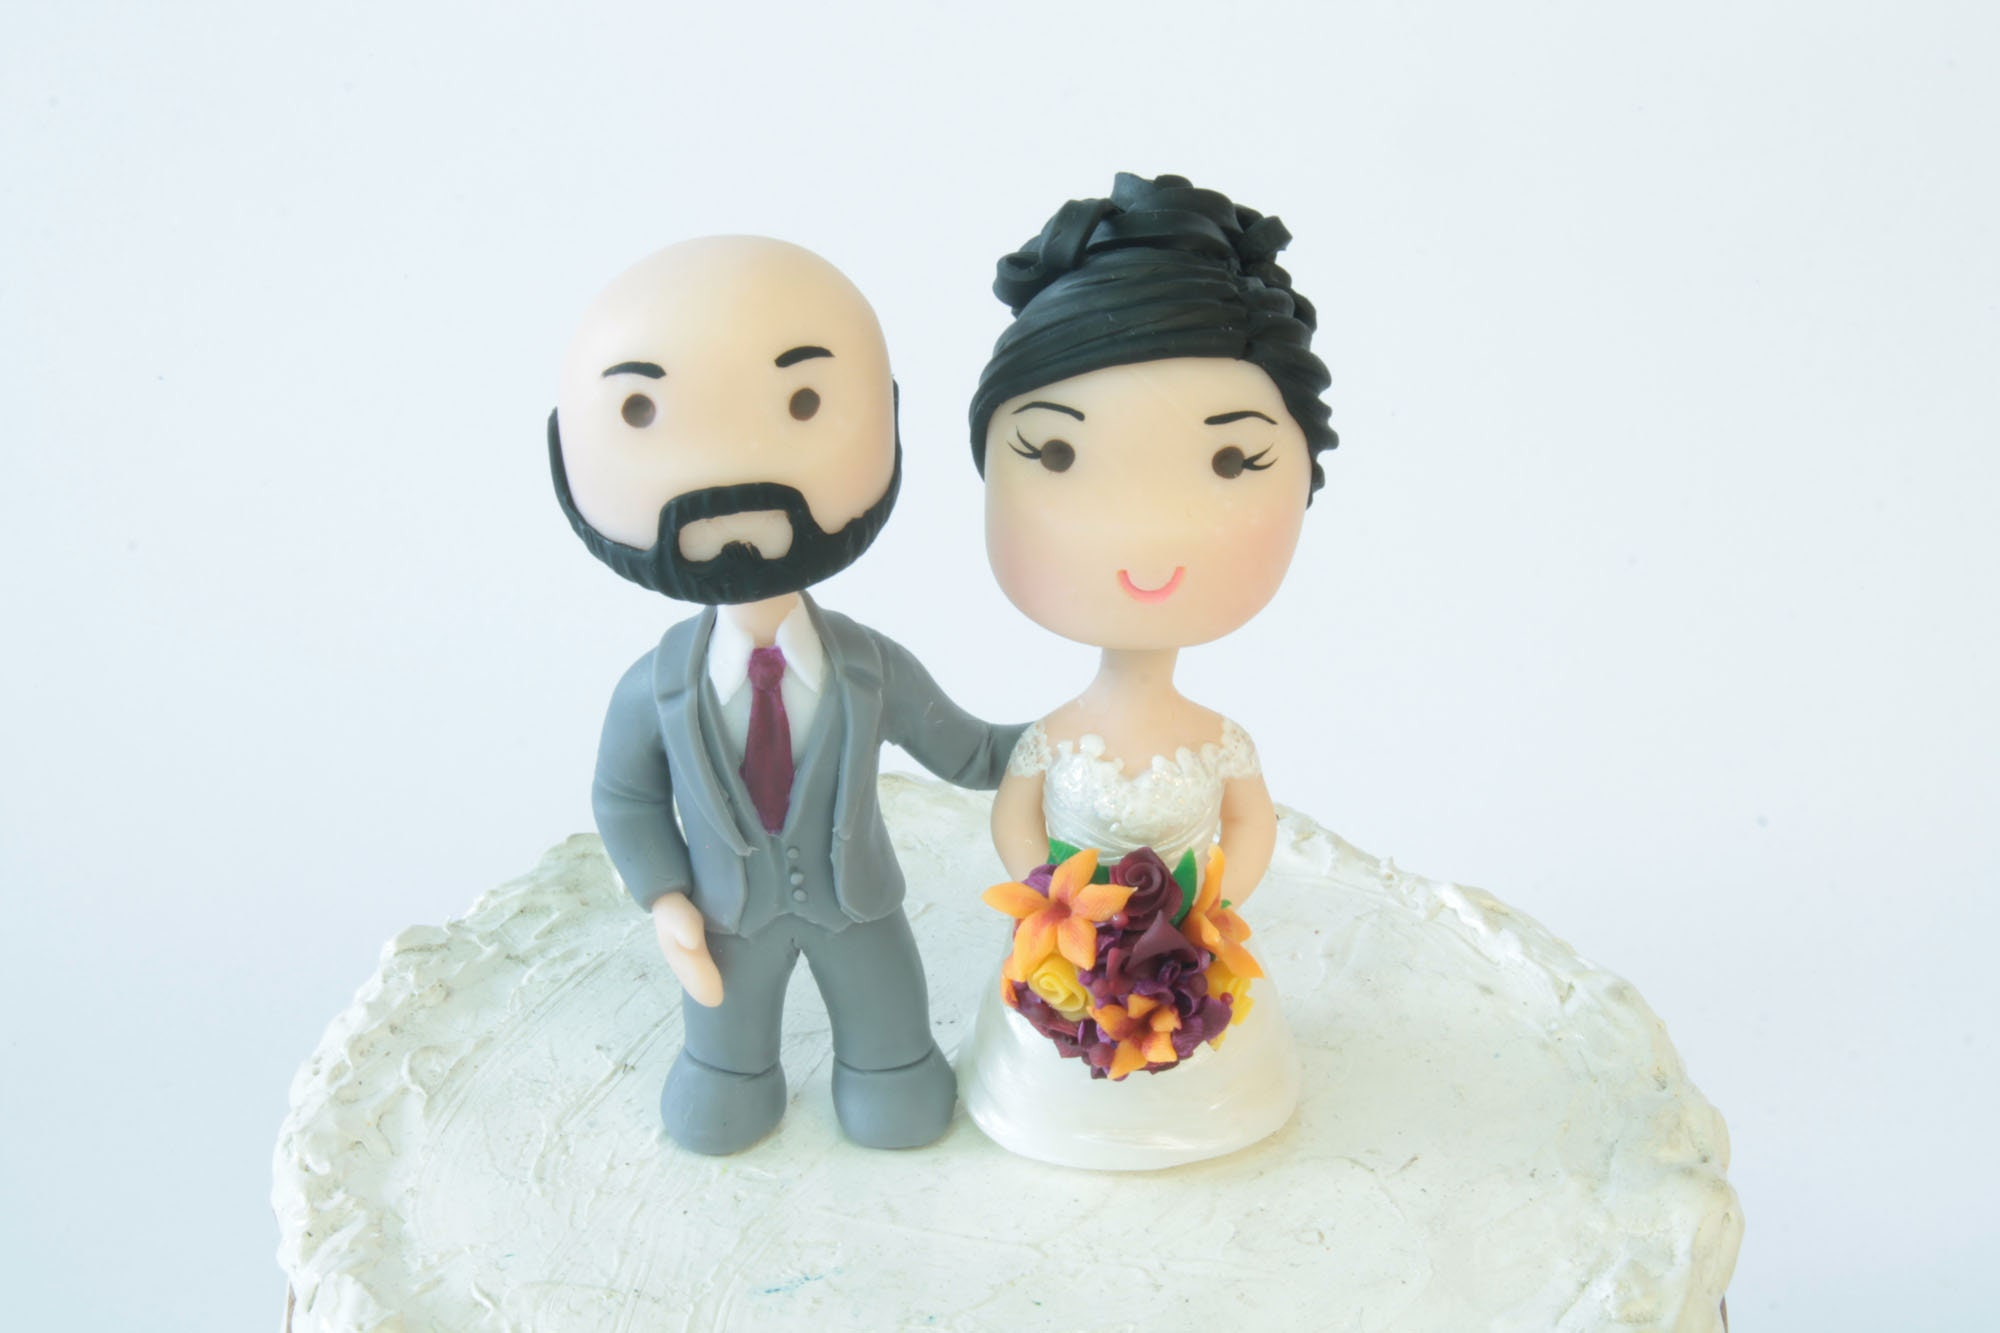 Chibi Wedding Cake Topper Bald Anime Couple Bride And Groom Figurines Centerpiece Decoration Love Cake Topper Cute With Beard Shaved Head